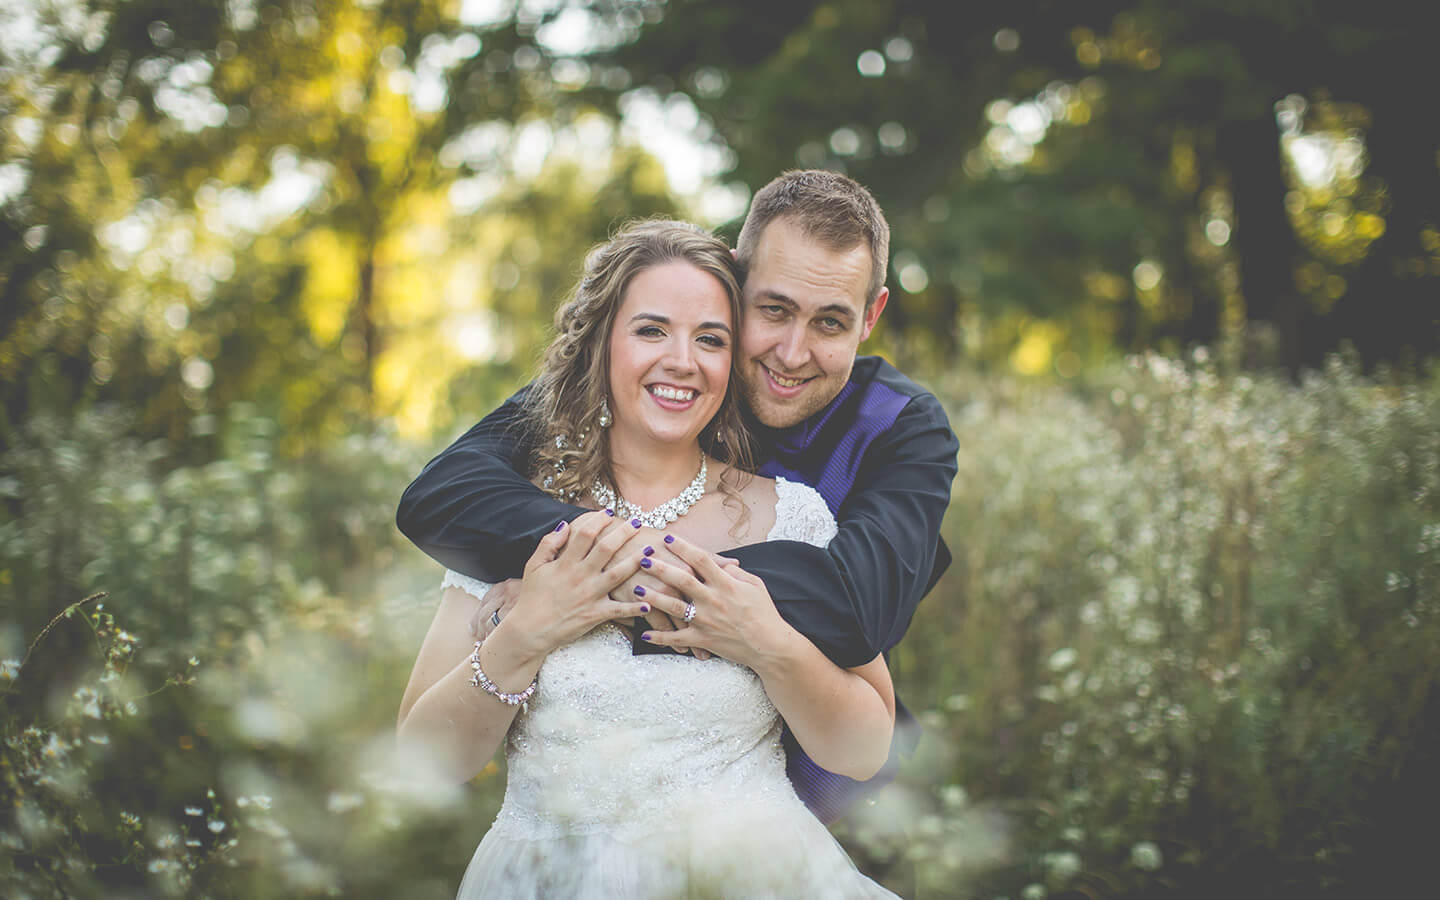 Michigan wedding, bride and groom hugging in a field of flowers